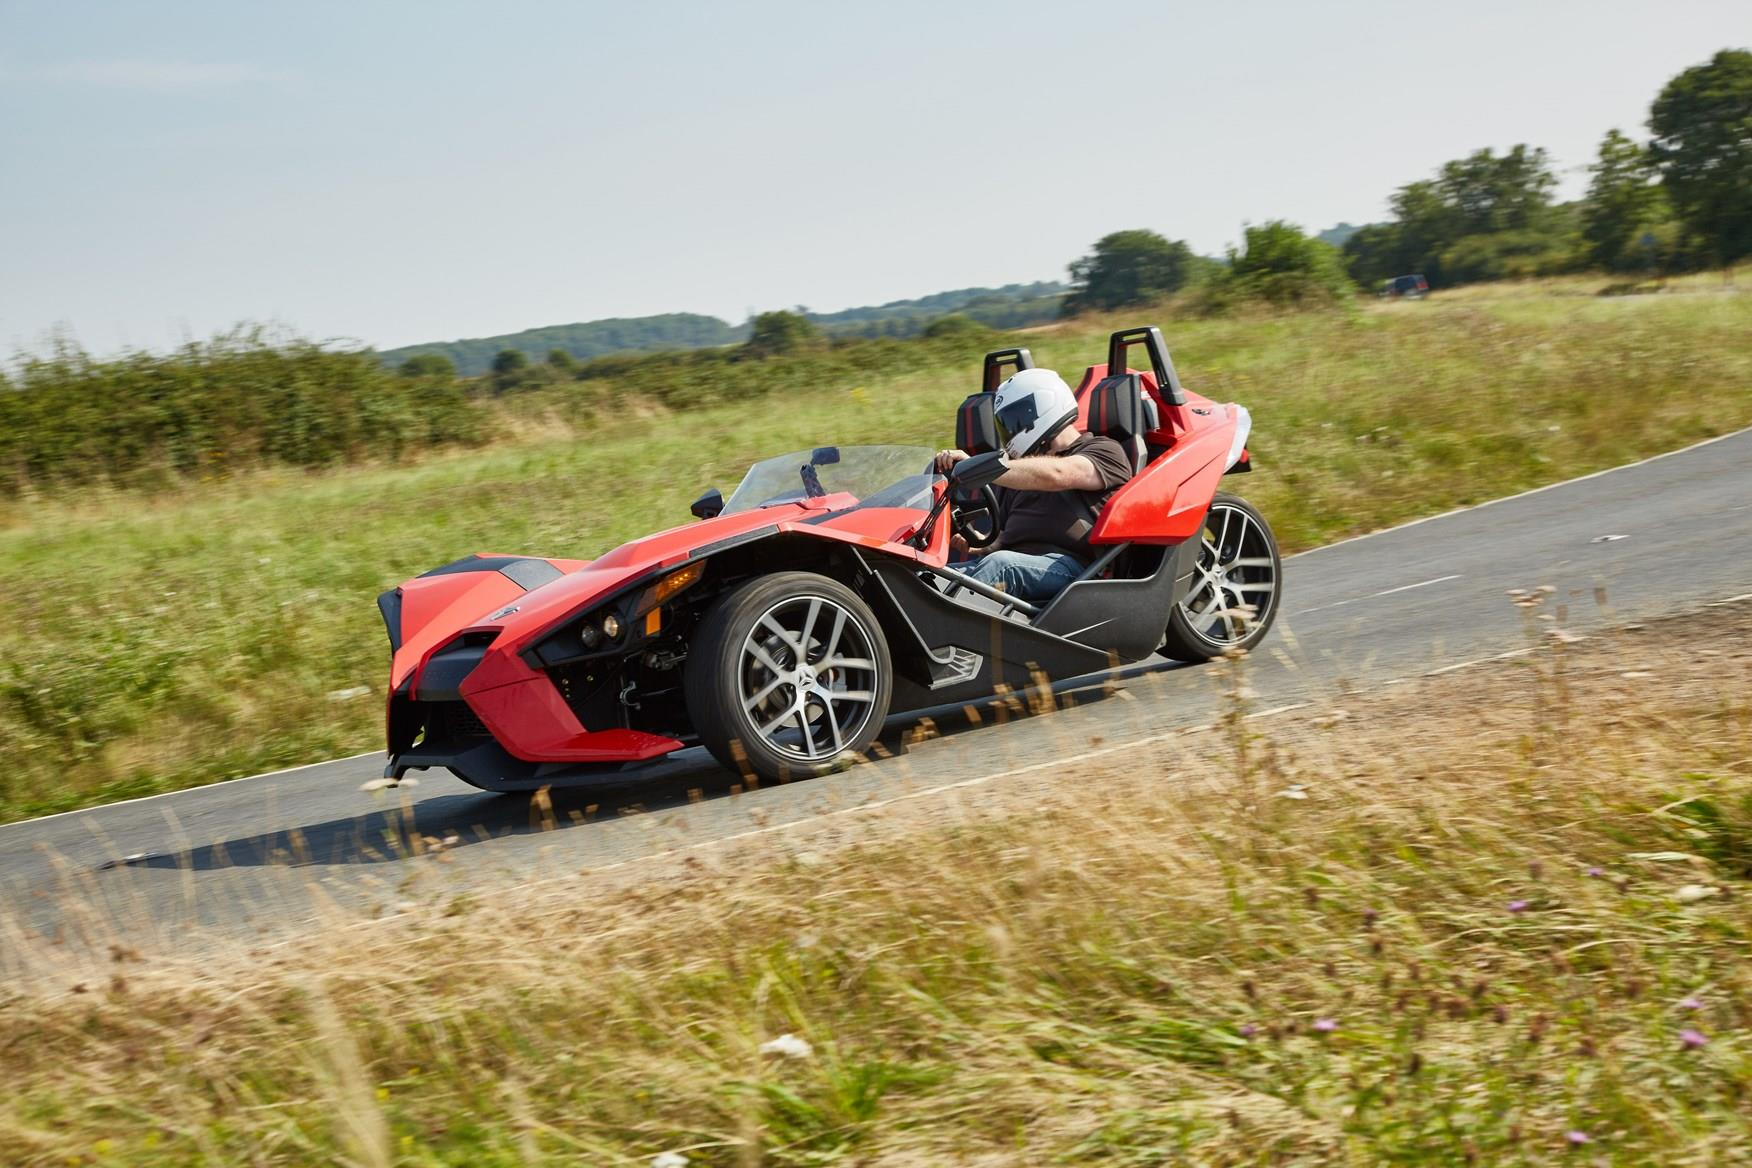 The Polaris Slingshot in action